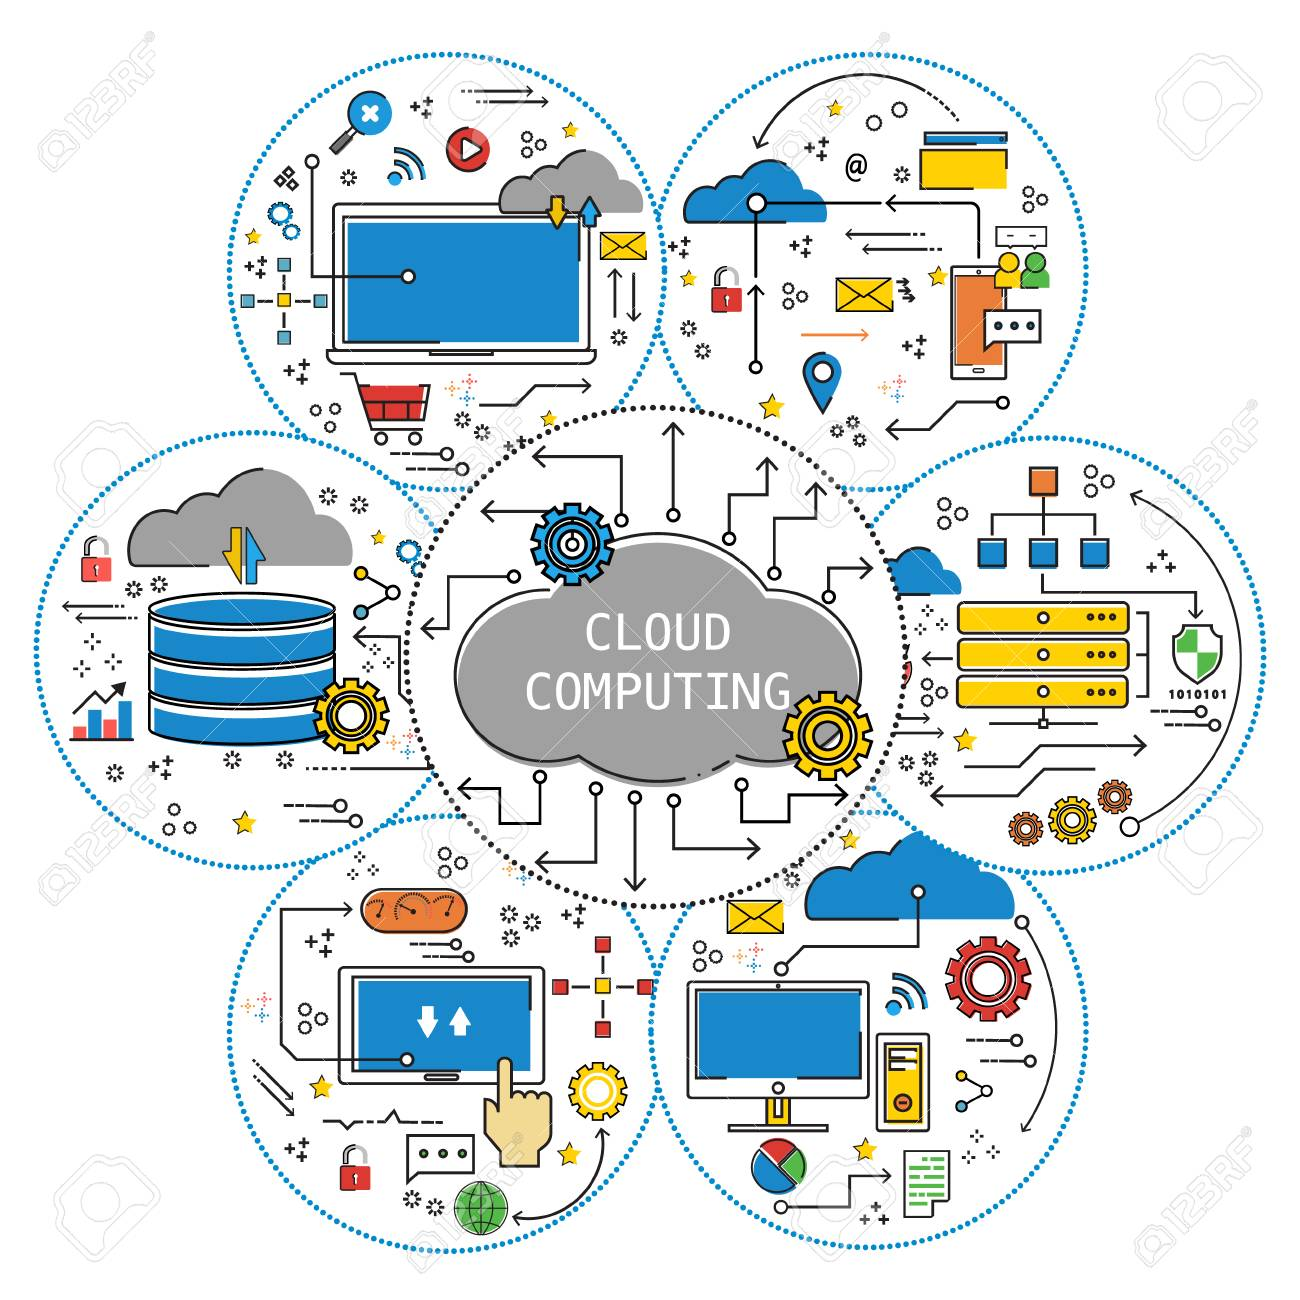 Cloud Computing: Business Trends and Technologies